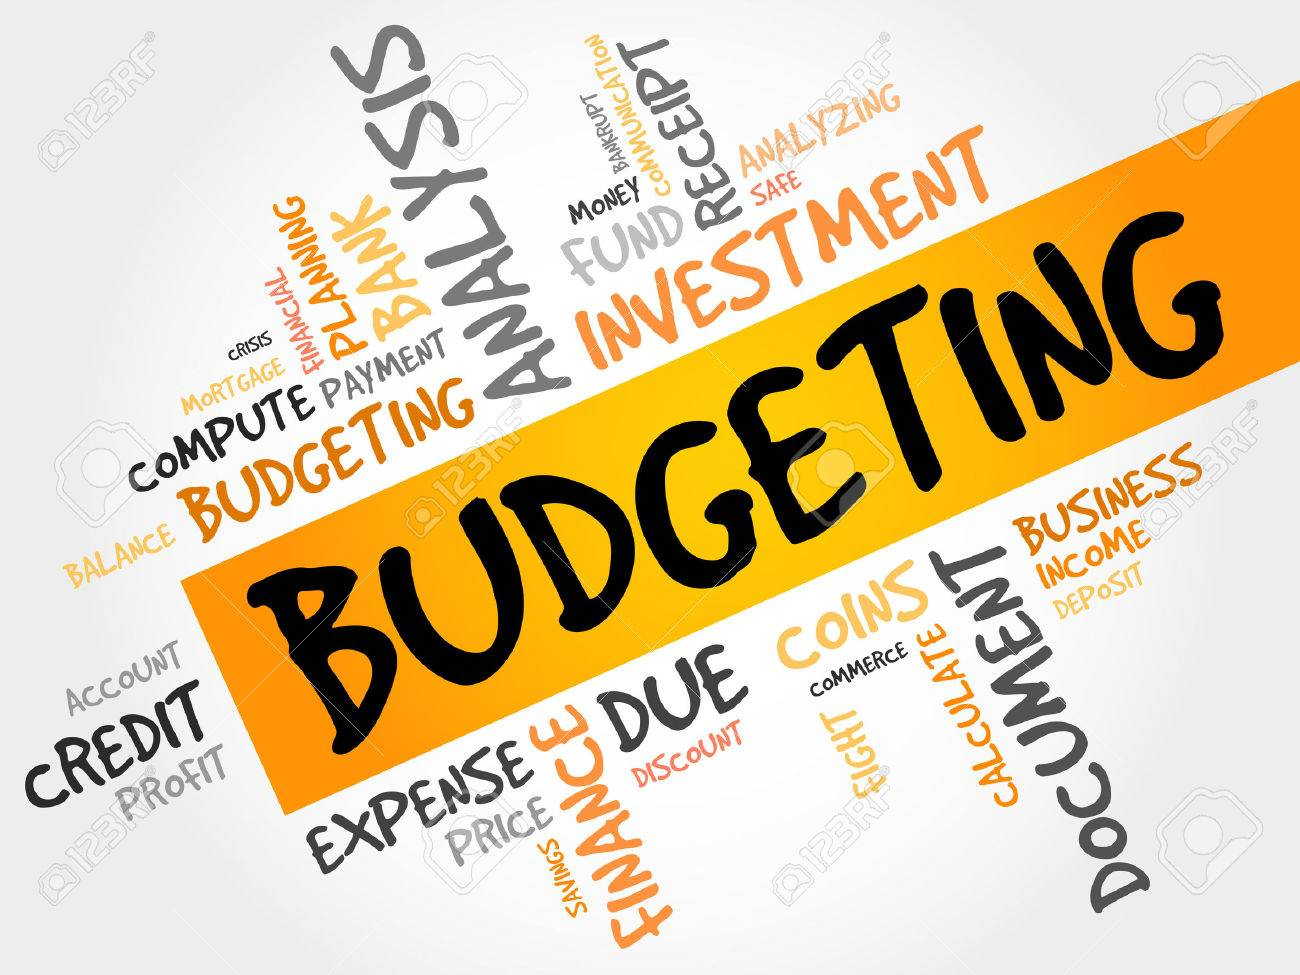 budgeting word cloud business concept royalty free cliparts